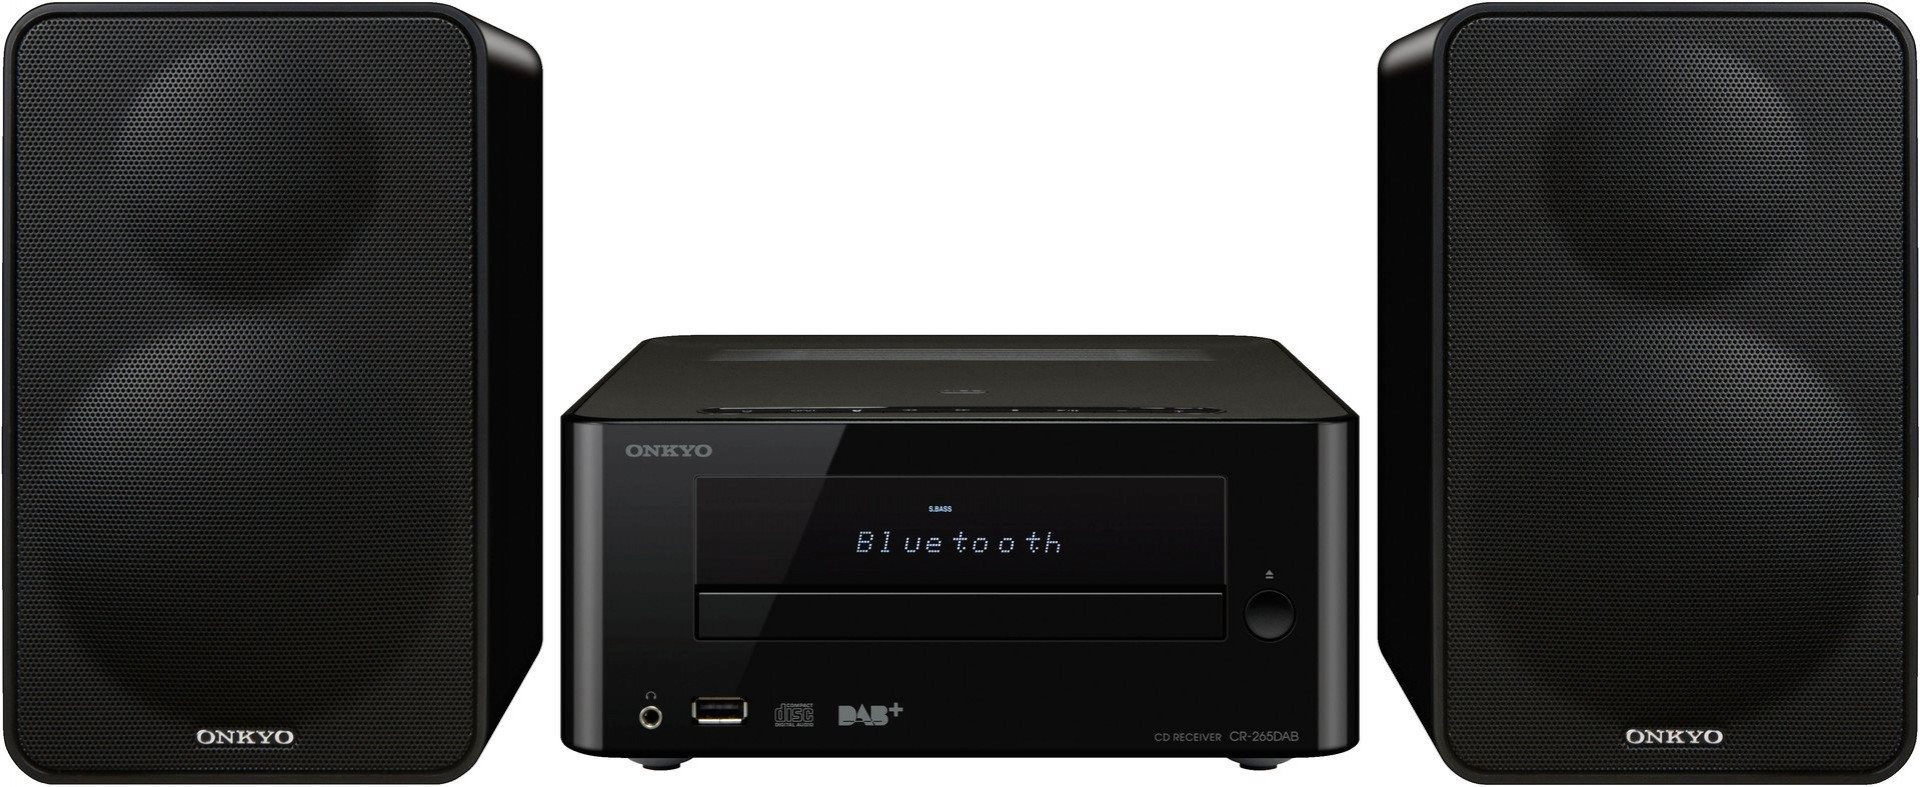 ONKYO CS-265DAB Black w/ Bluetooth